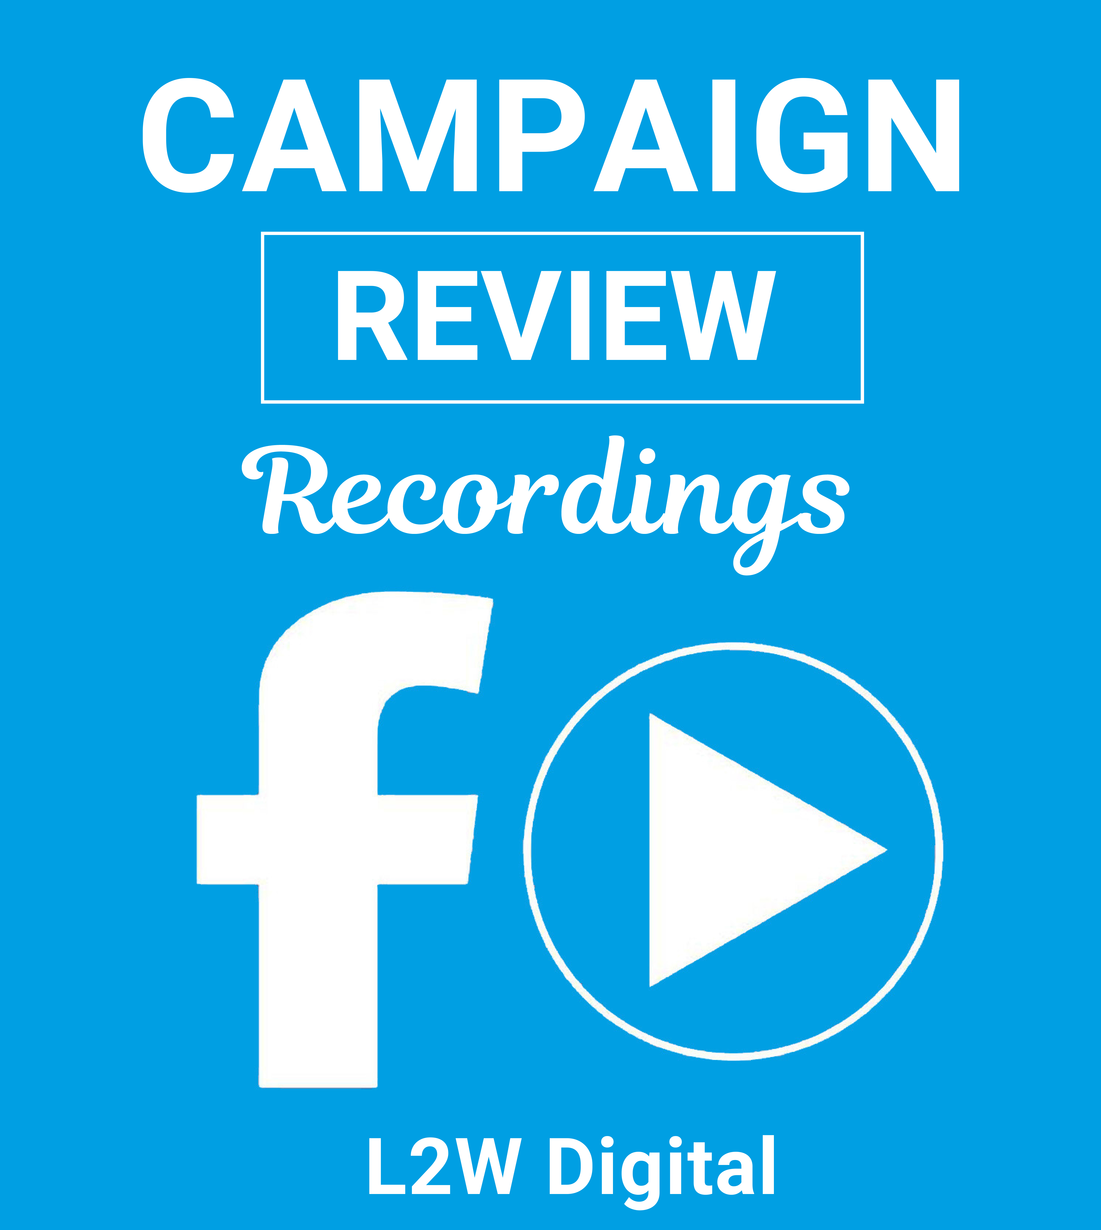 Campaign Review Recordings